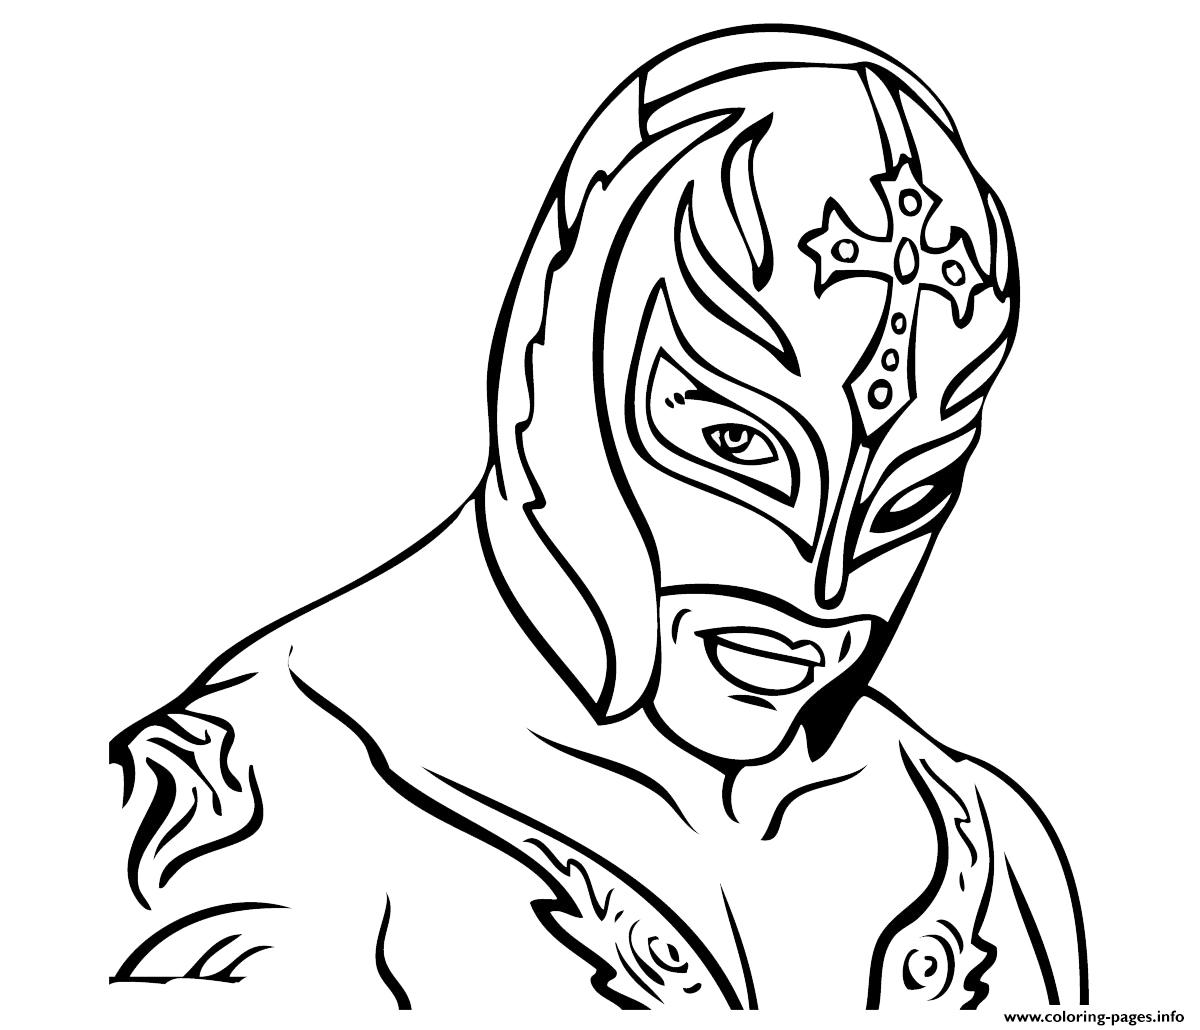 Rey Mysterio Wwe Coloring Pages Printable